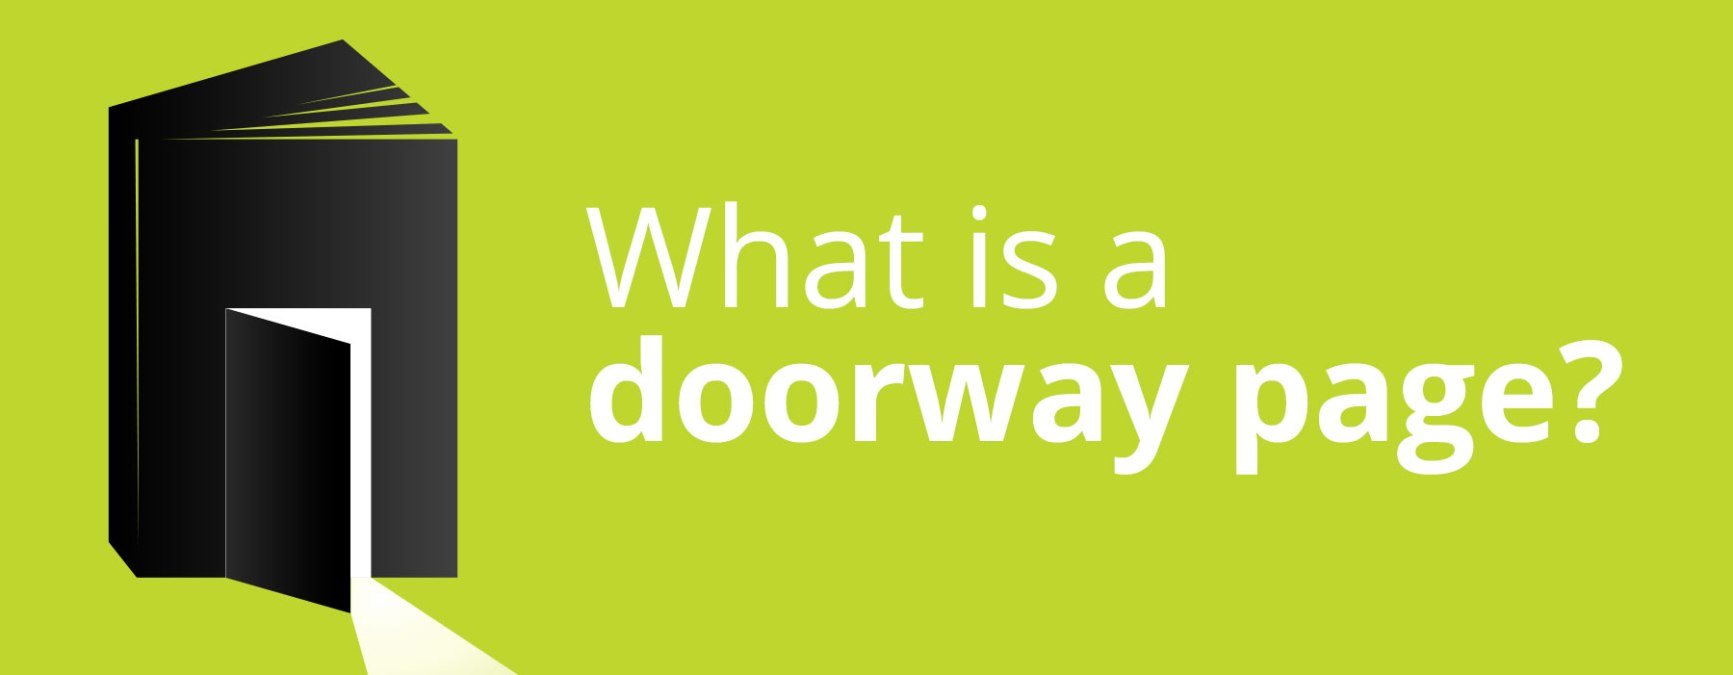 Google's Doorway Update – What is a Doorway Page?